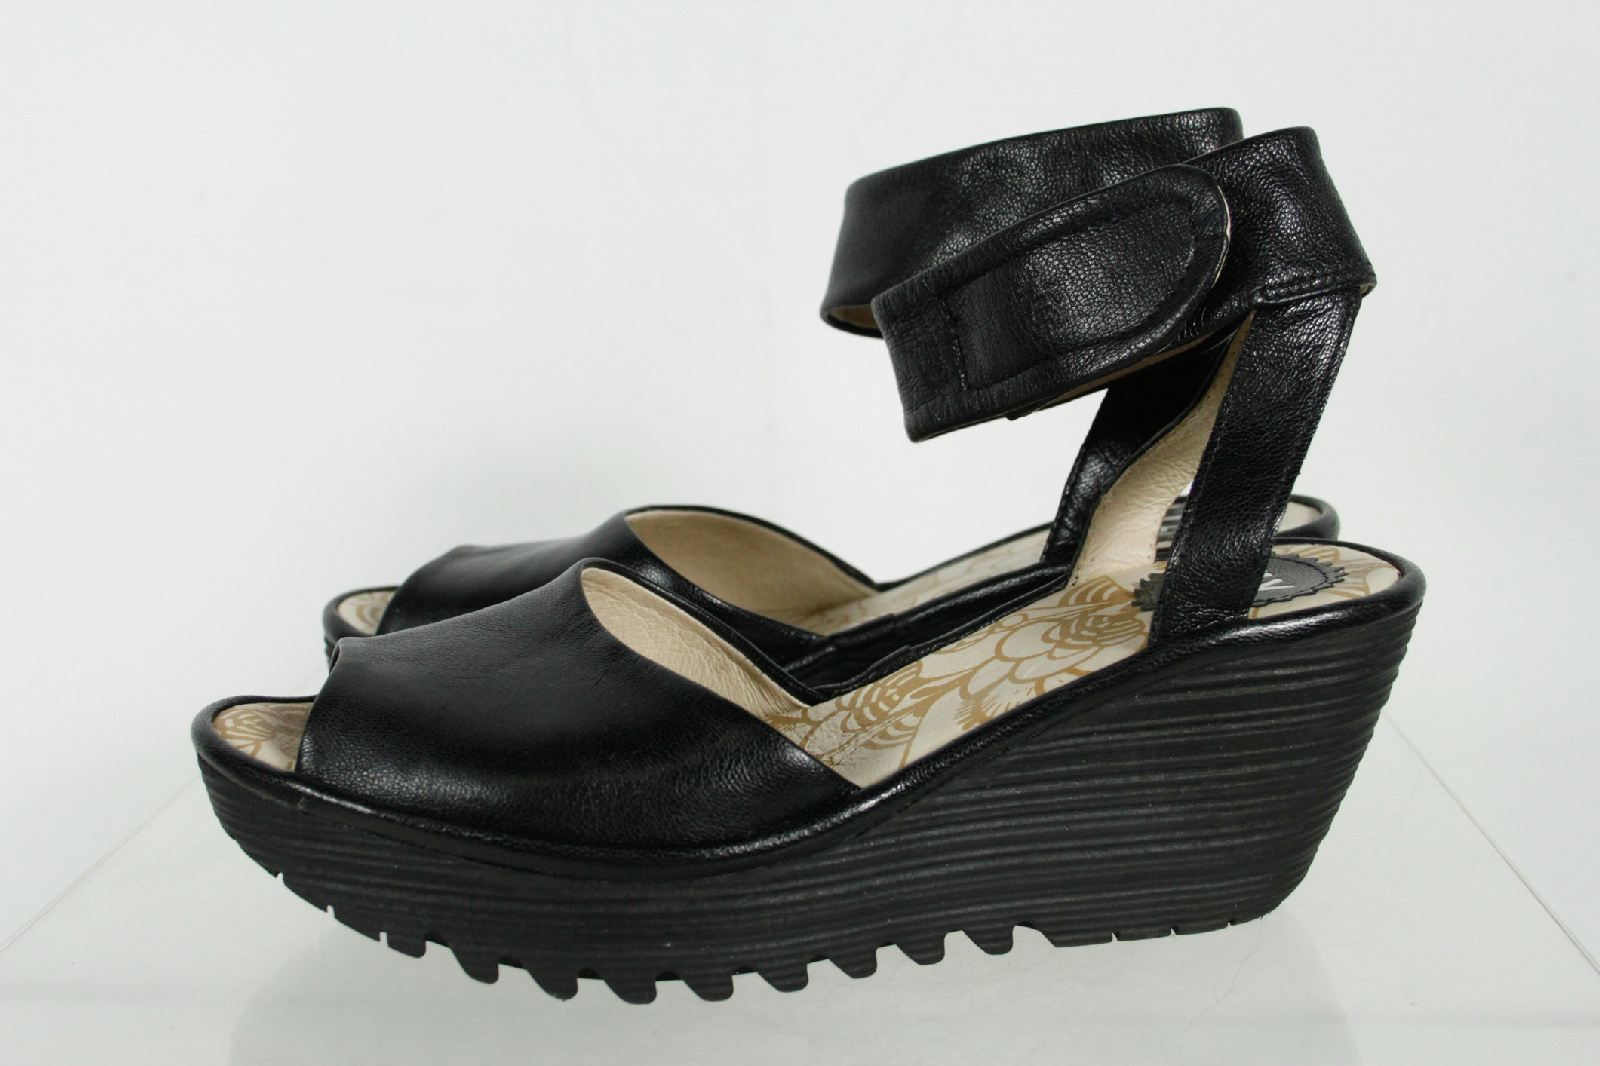 Fly London Black Wedge Ankle Strap Sandals Size 37 | eBay